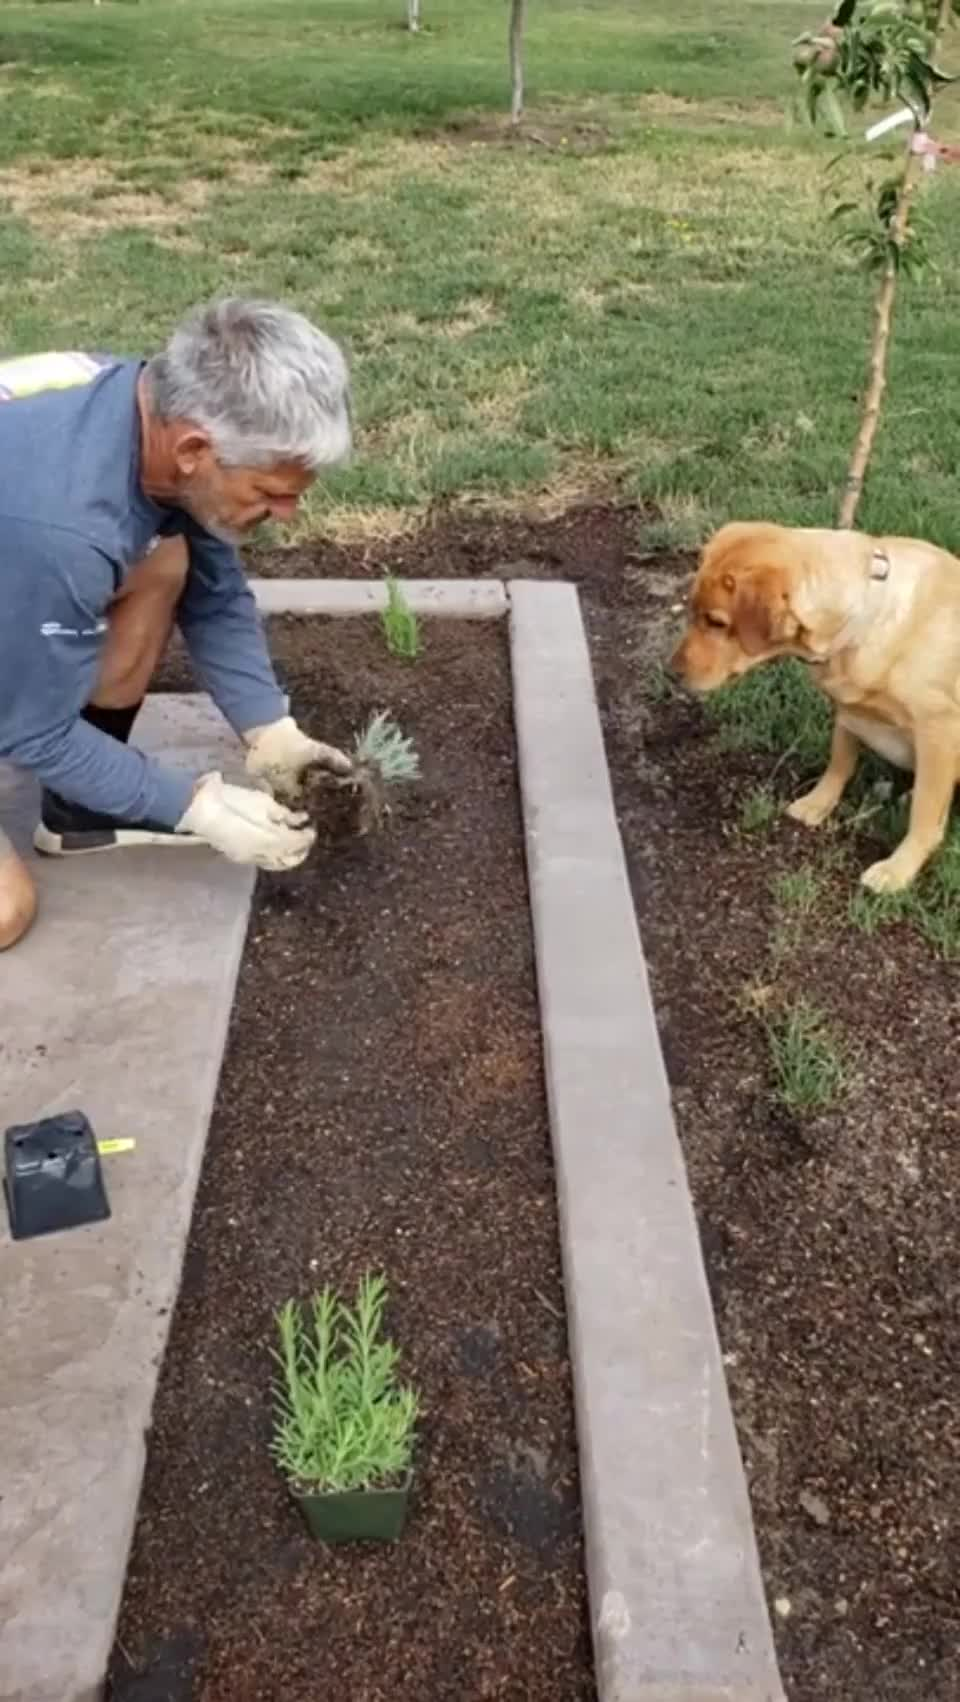 ⁣Minutes later the dog has dug up all those plants, lol